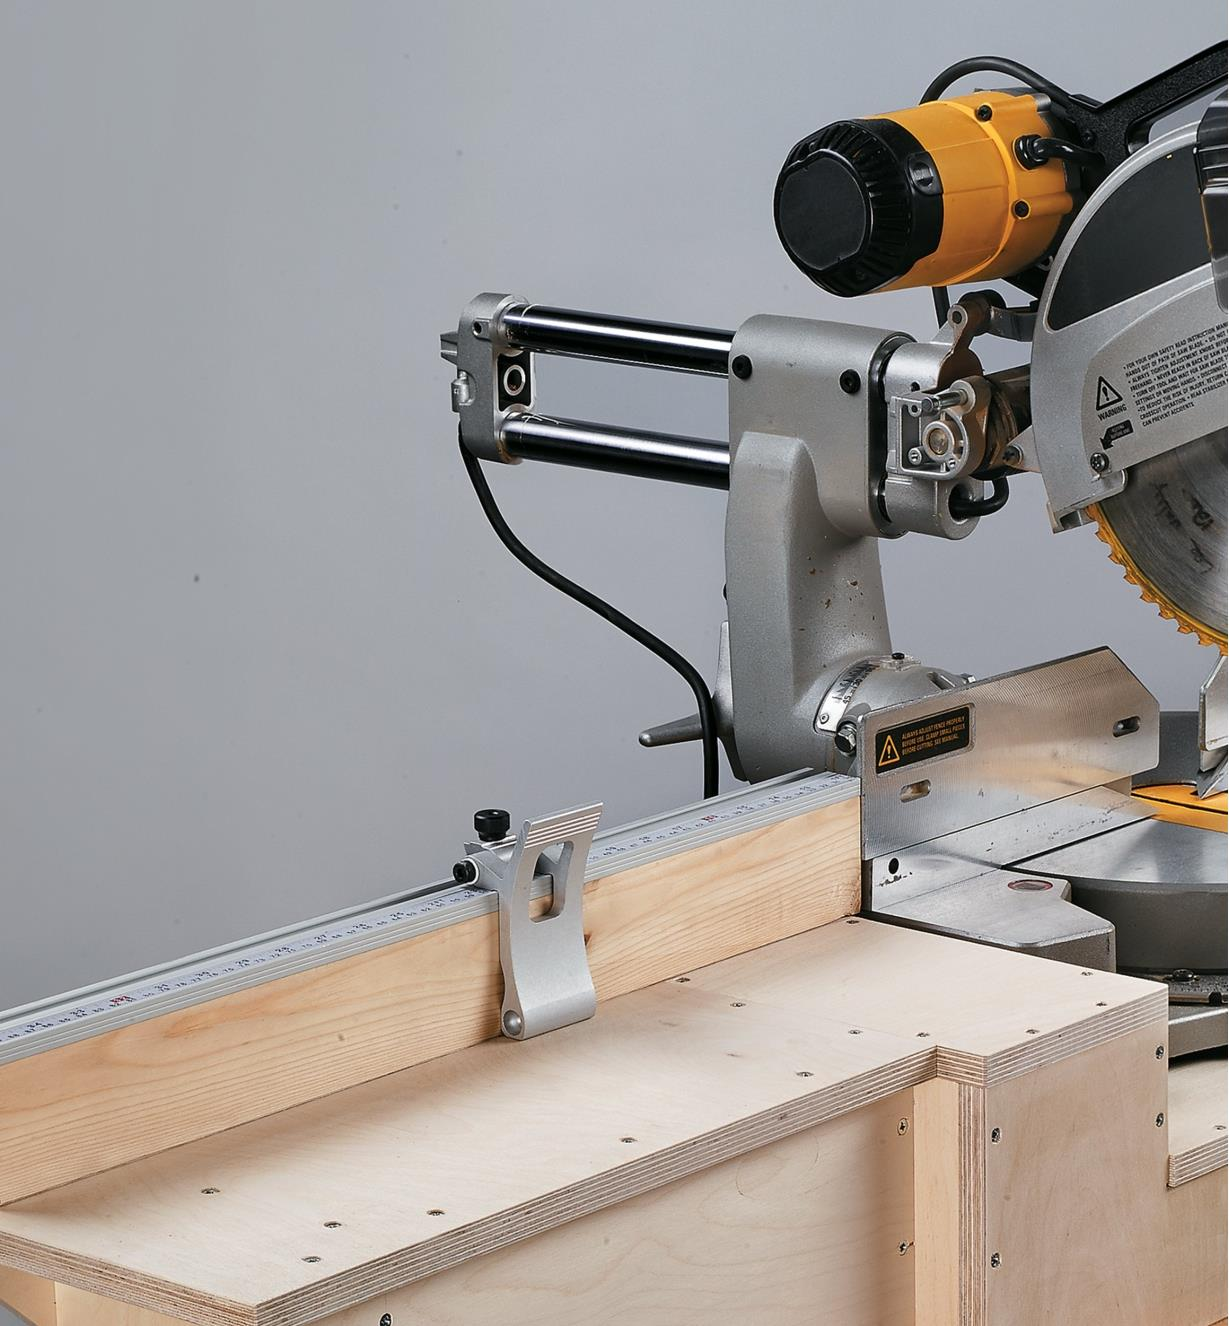 Flip stop in use on a miter saw stand